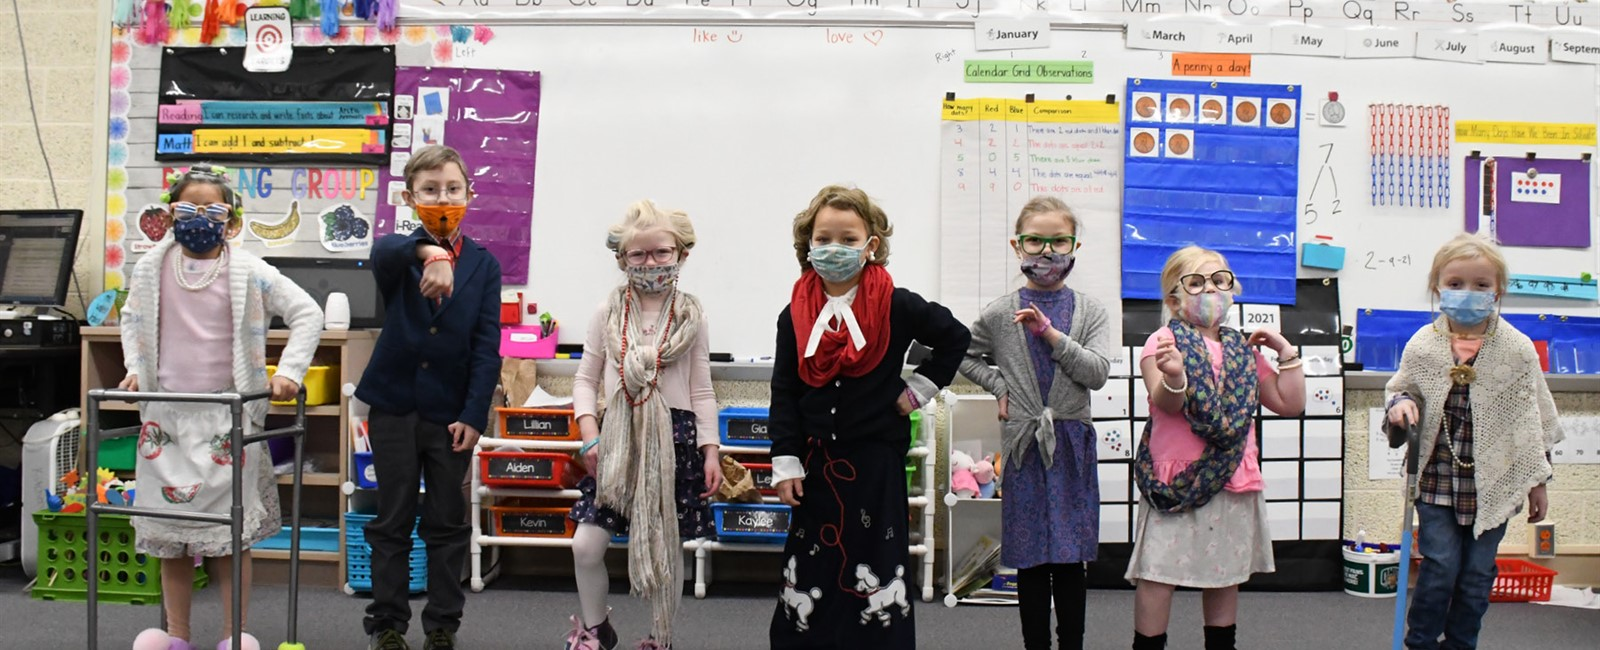 B.L. Miller Kindergarten Students celebration 100 Days of School!